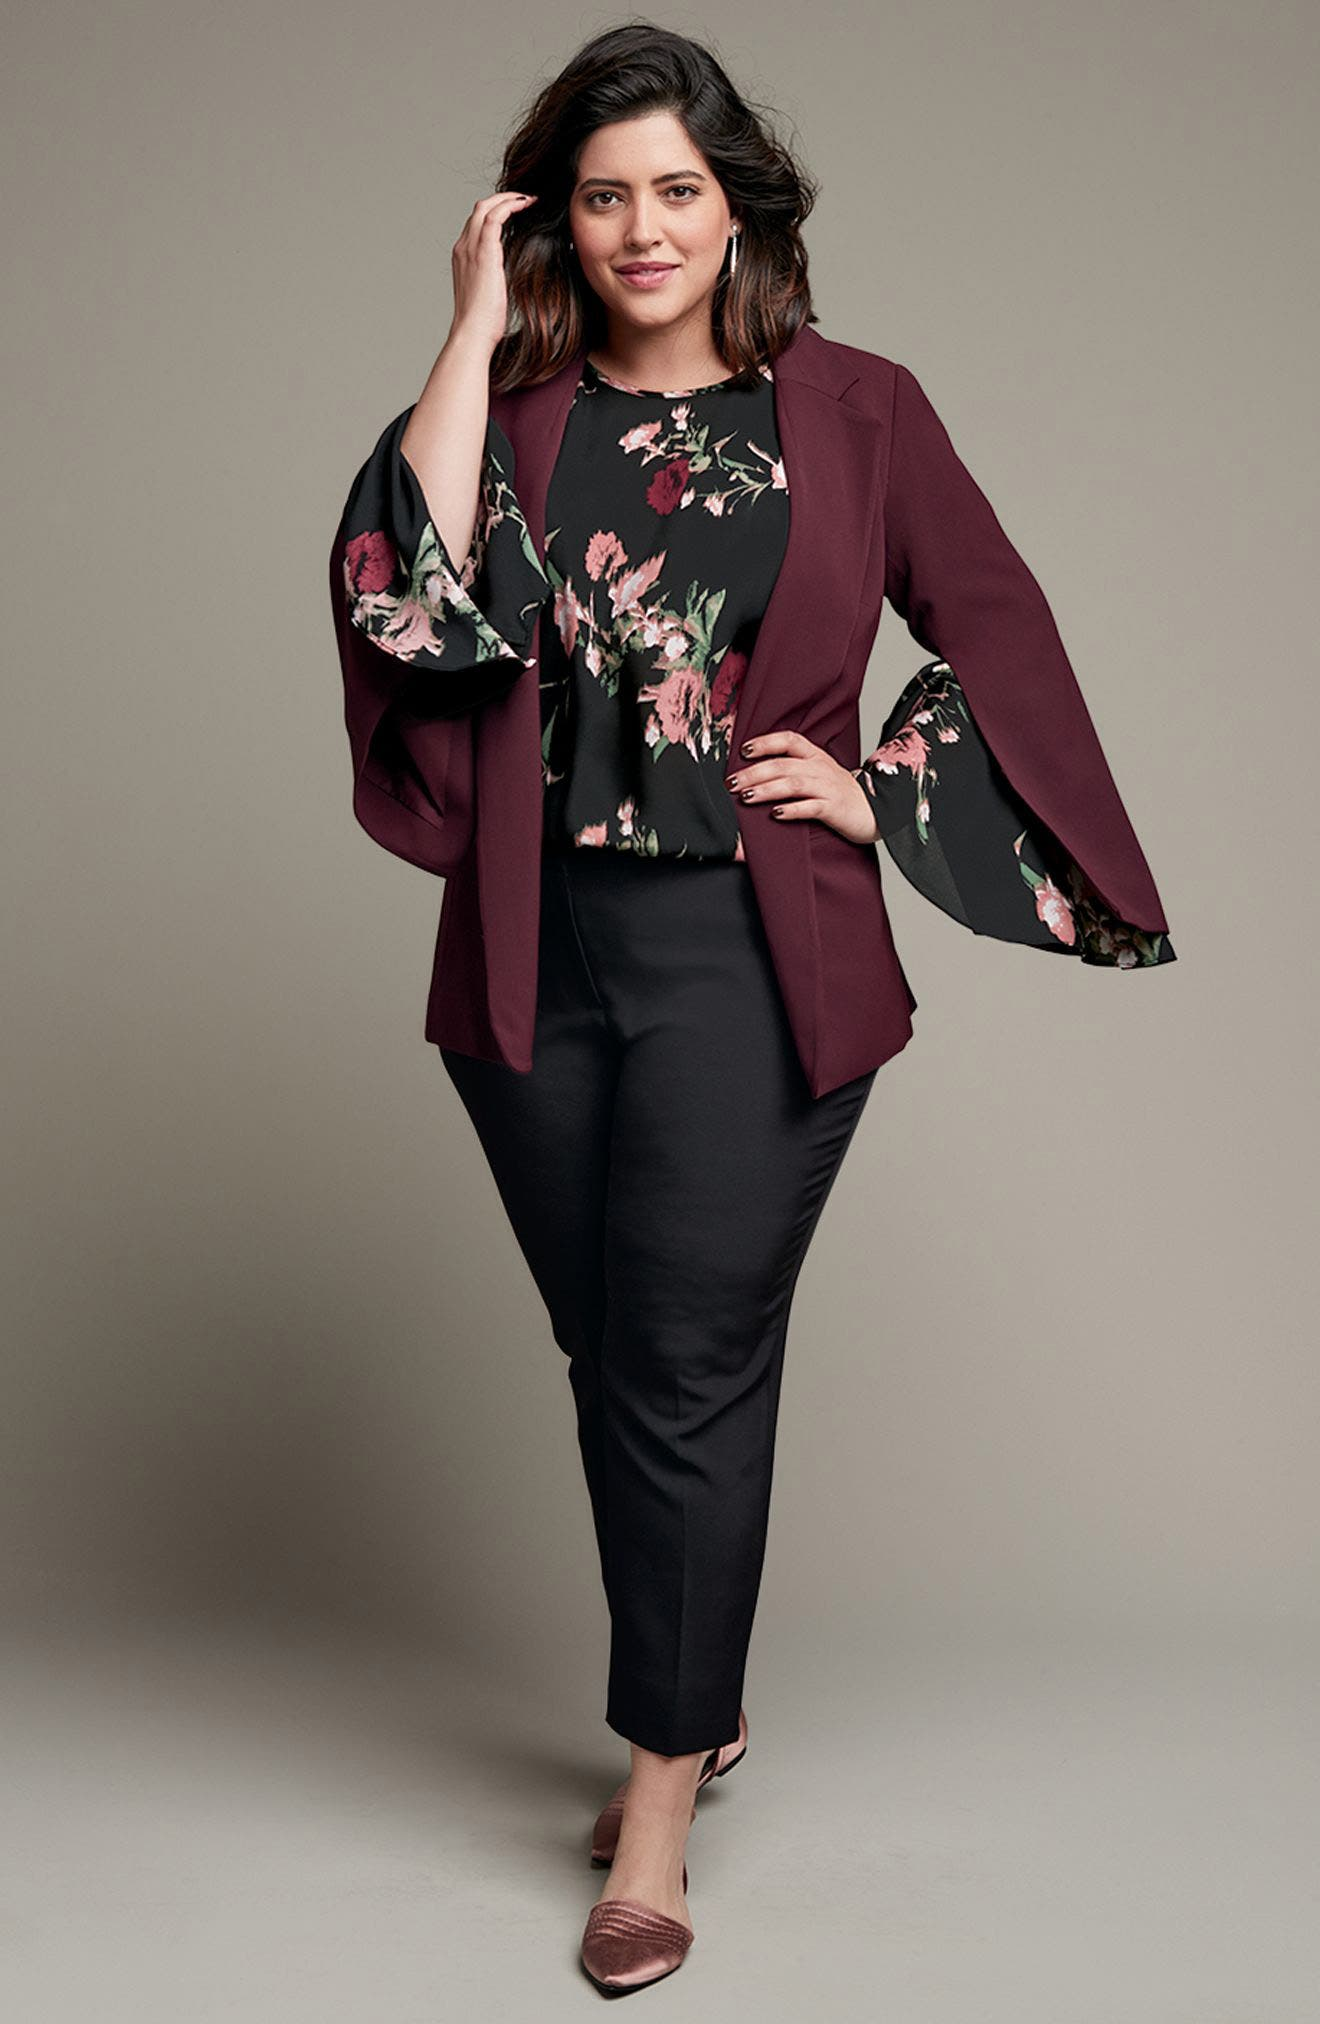 Vince Camuto Blazer, Blouse & Ankle Pants Outfit with Accessories (Plus Size)